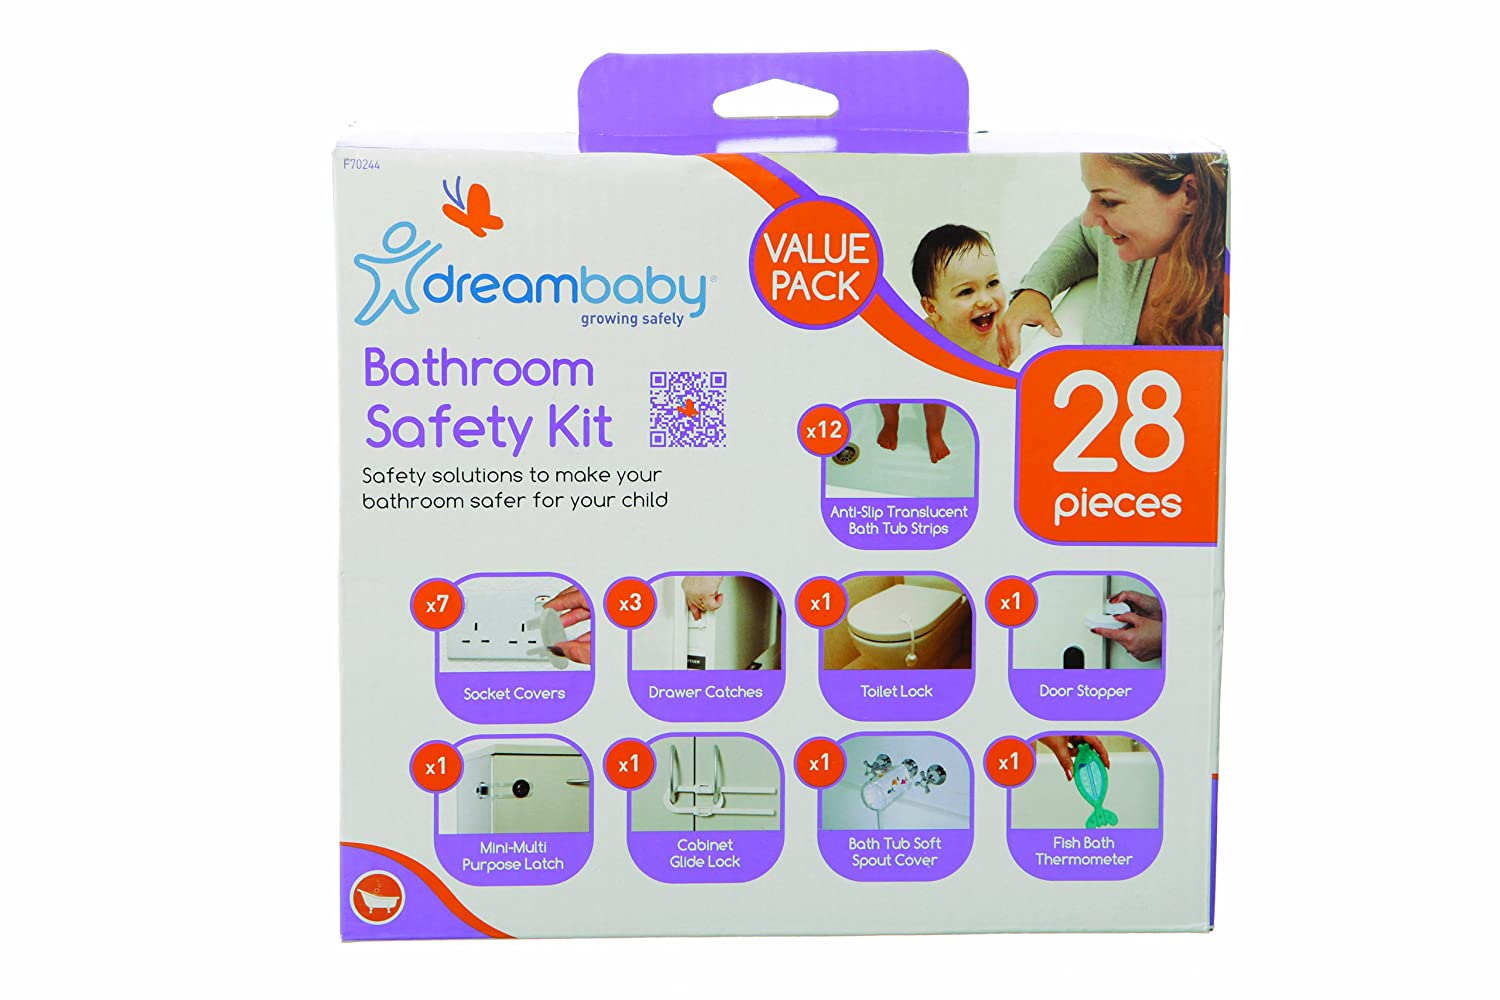 Dreambaby Bathroom Safety Kit Value Pack White, 28 Pieces